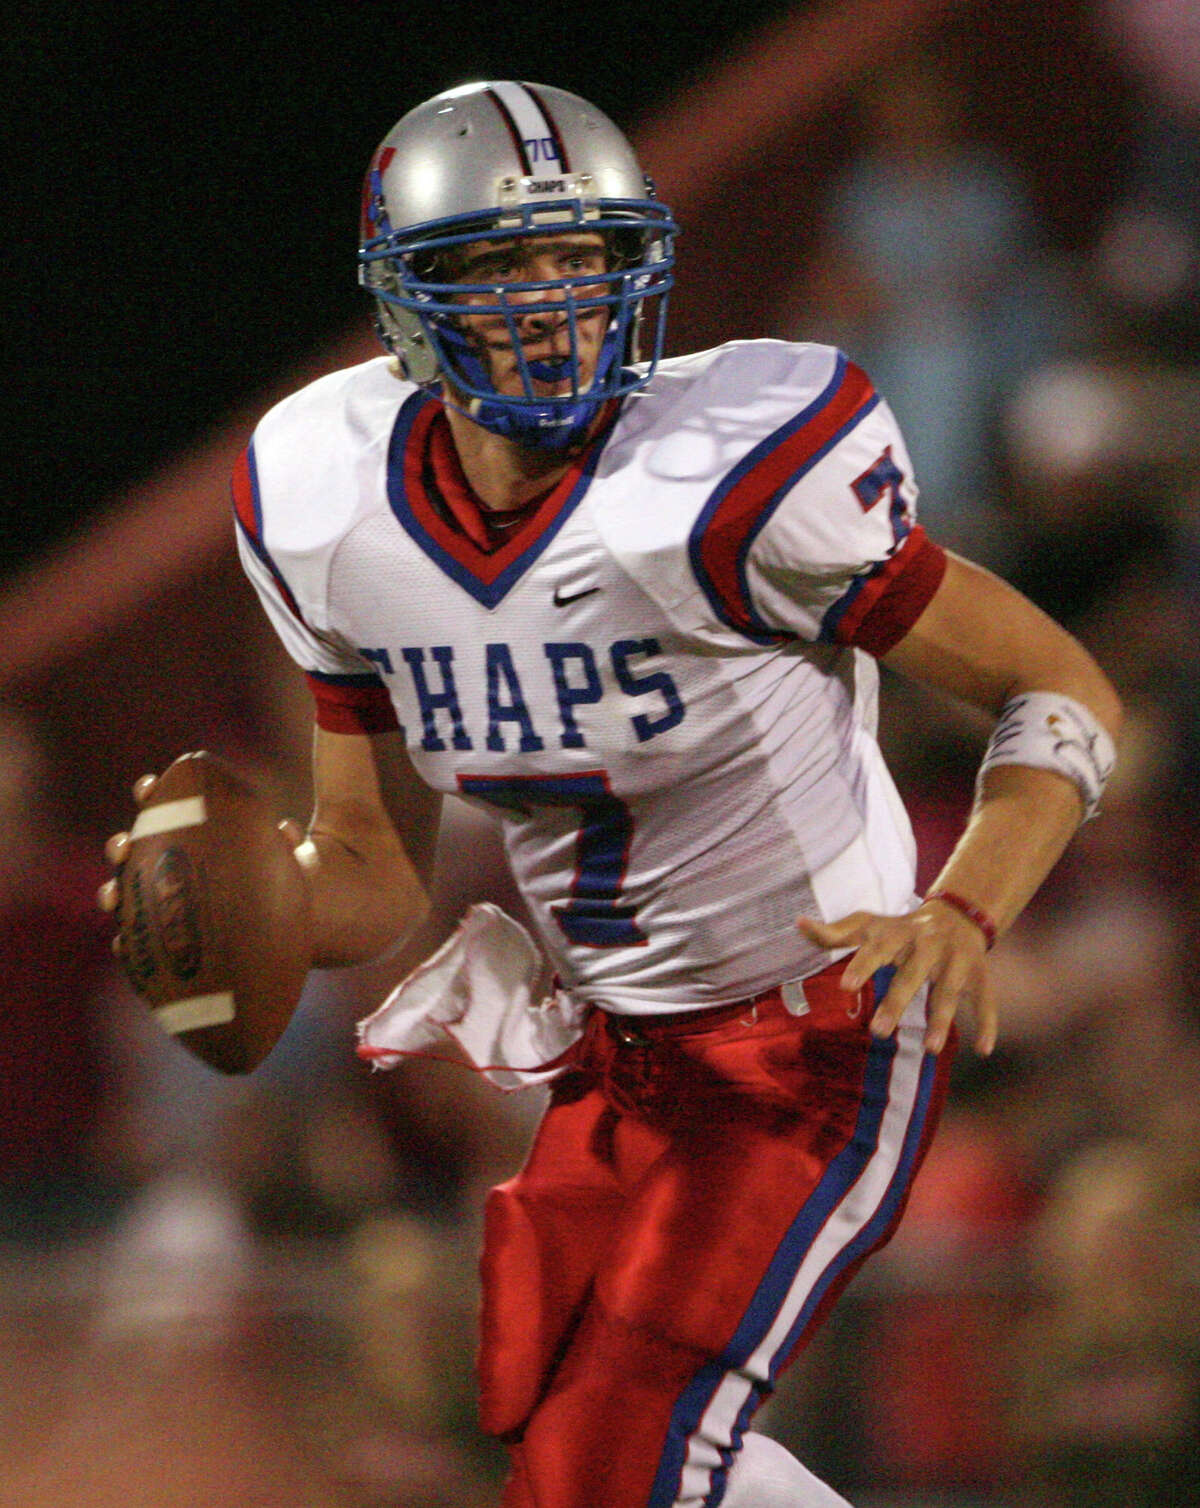 FILE - In this Sept. 29, 2006 file photo, Westlake High School quarterback Nick Foles looks for a receiver against Austin High during a football game in Austin, Texas. Ten years after Drew Brees led Westlake High School to victory in the Texas state championship game, Foles broke several of his passing records but lost in the title game. The two quarterbacks meet with far more at stake _ Saints vs. Eagles in an NFC wild-card game. (AP Photo/Austin American Statesman, Jay Janner, File)